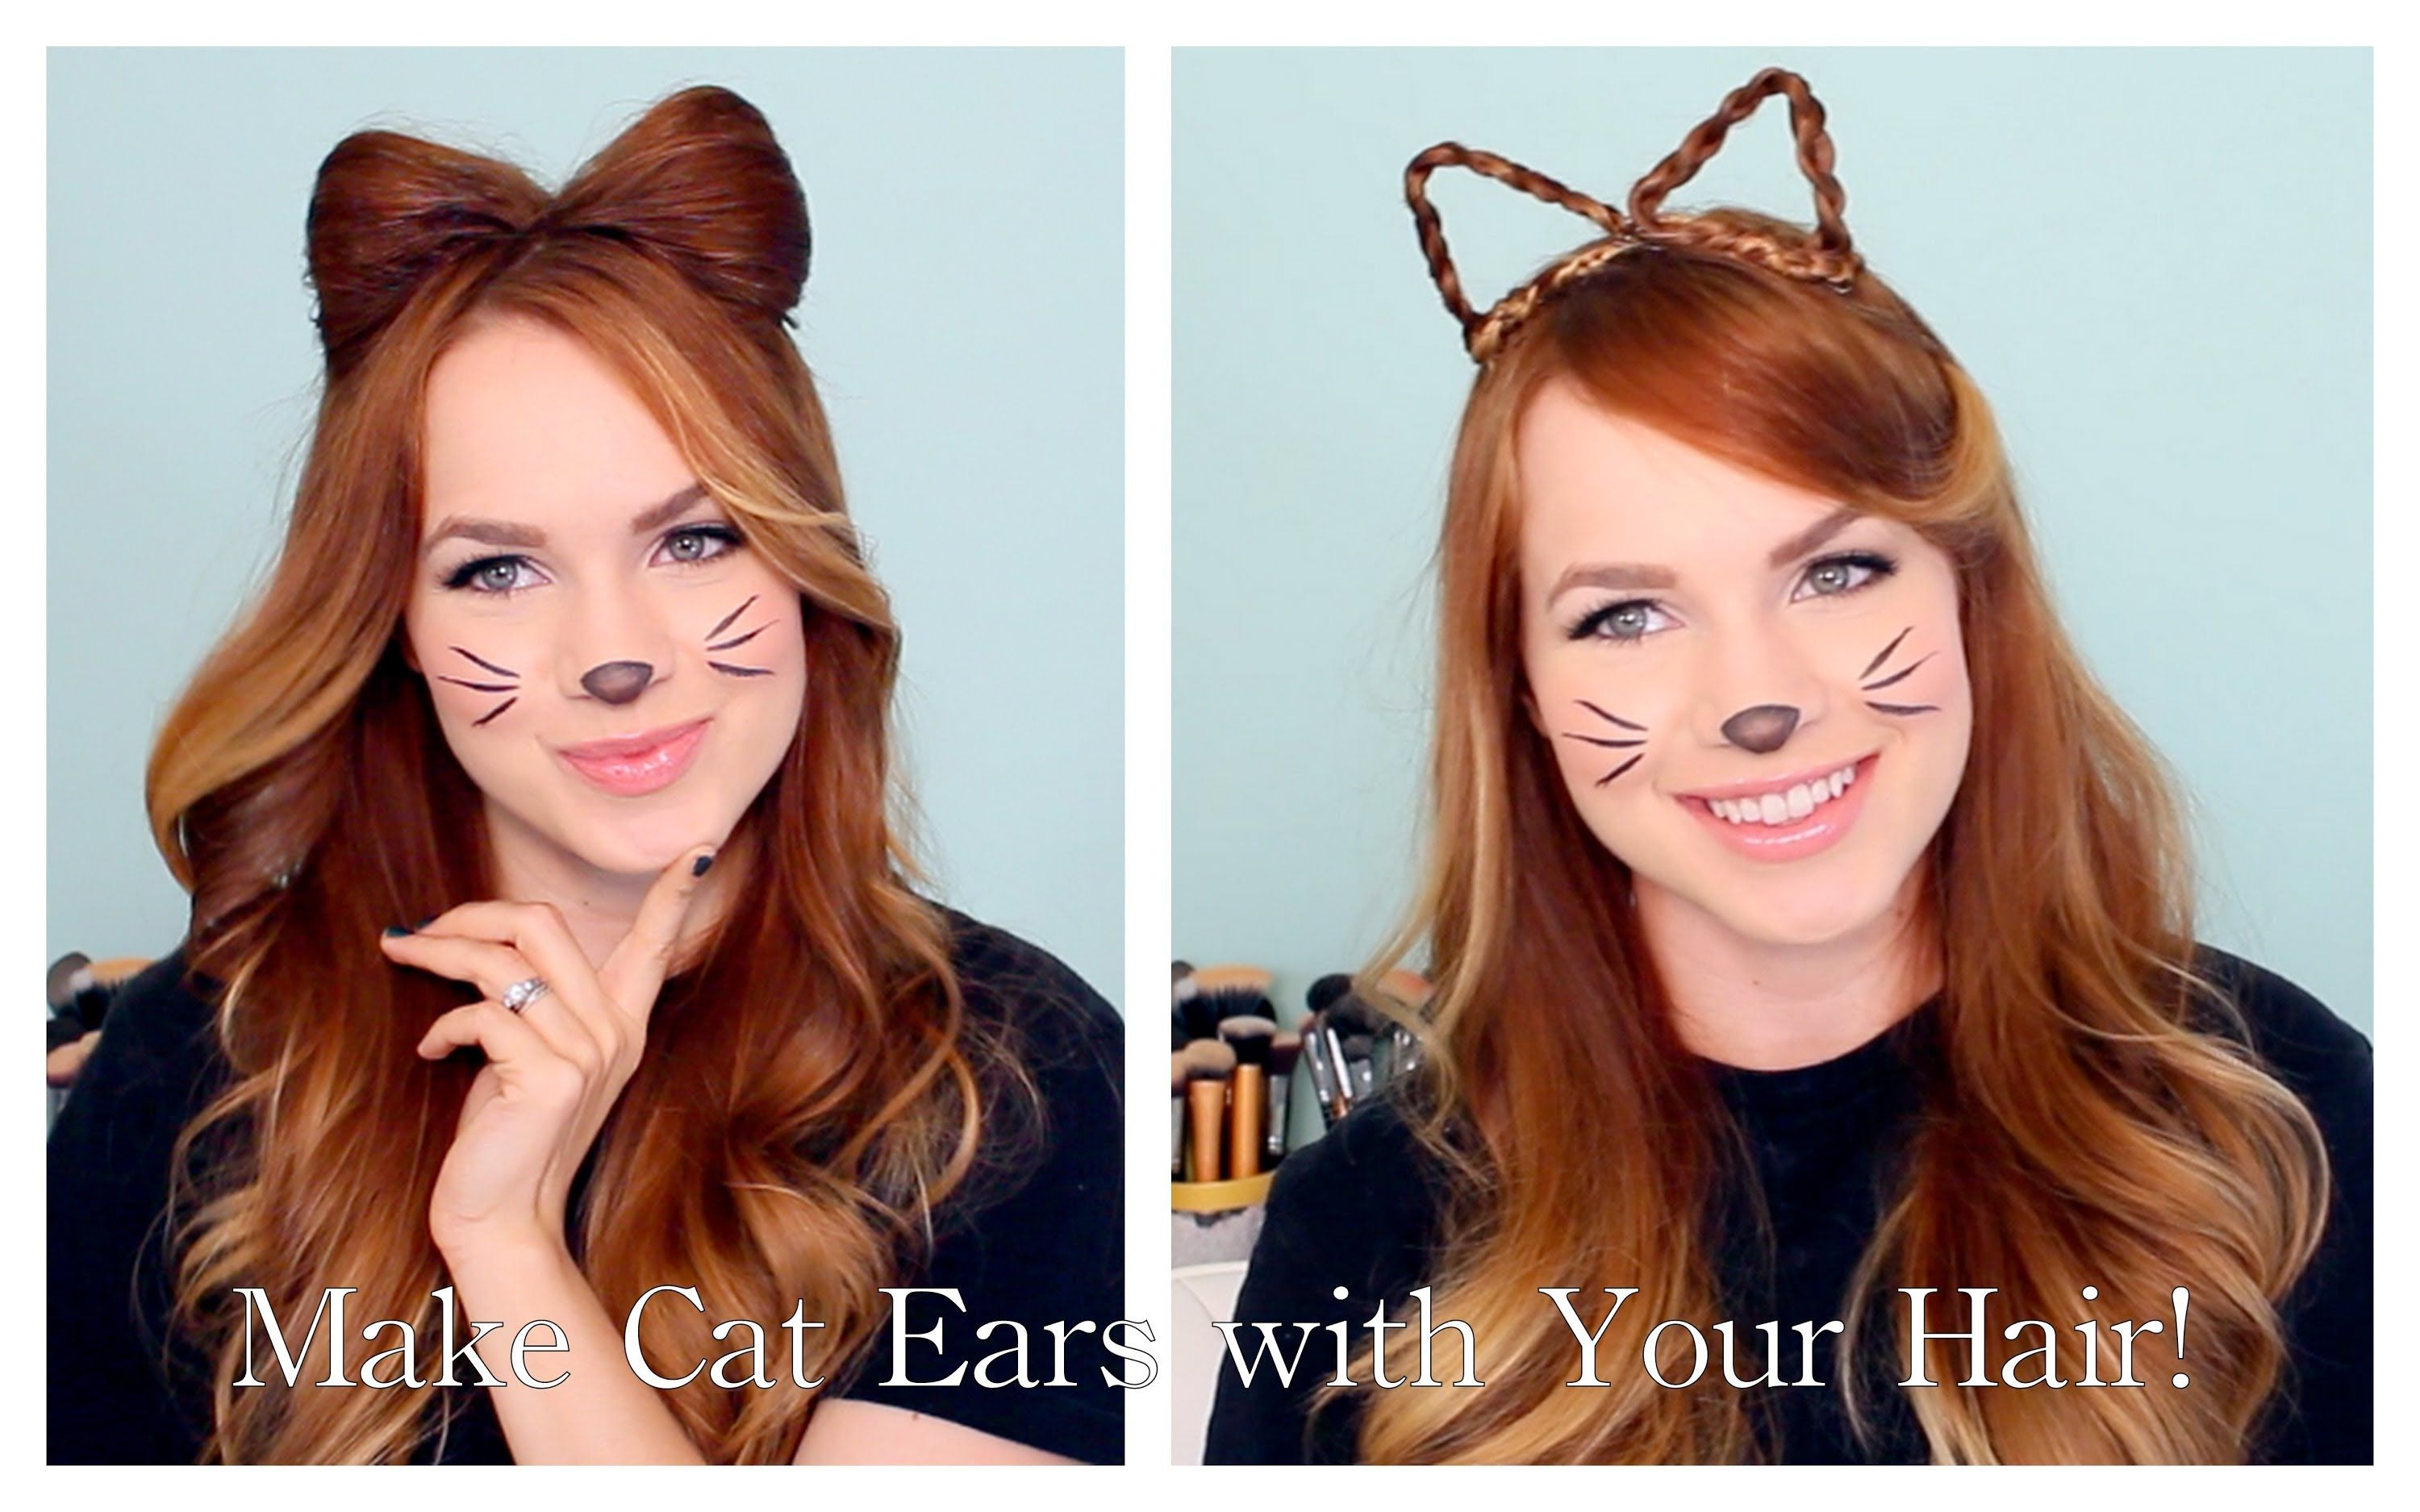 Is It Not The Cutest 2 Ways To Make Cat Ears With Your Hair A Great Quick And Cute Halloween Costume Option Halloween Hair Wacky Hair Kids Hairstyles